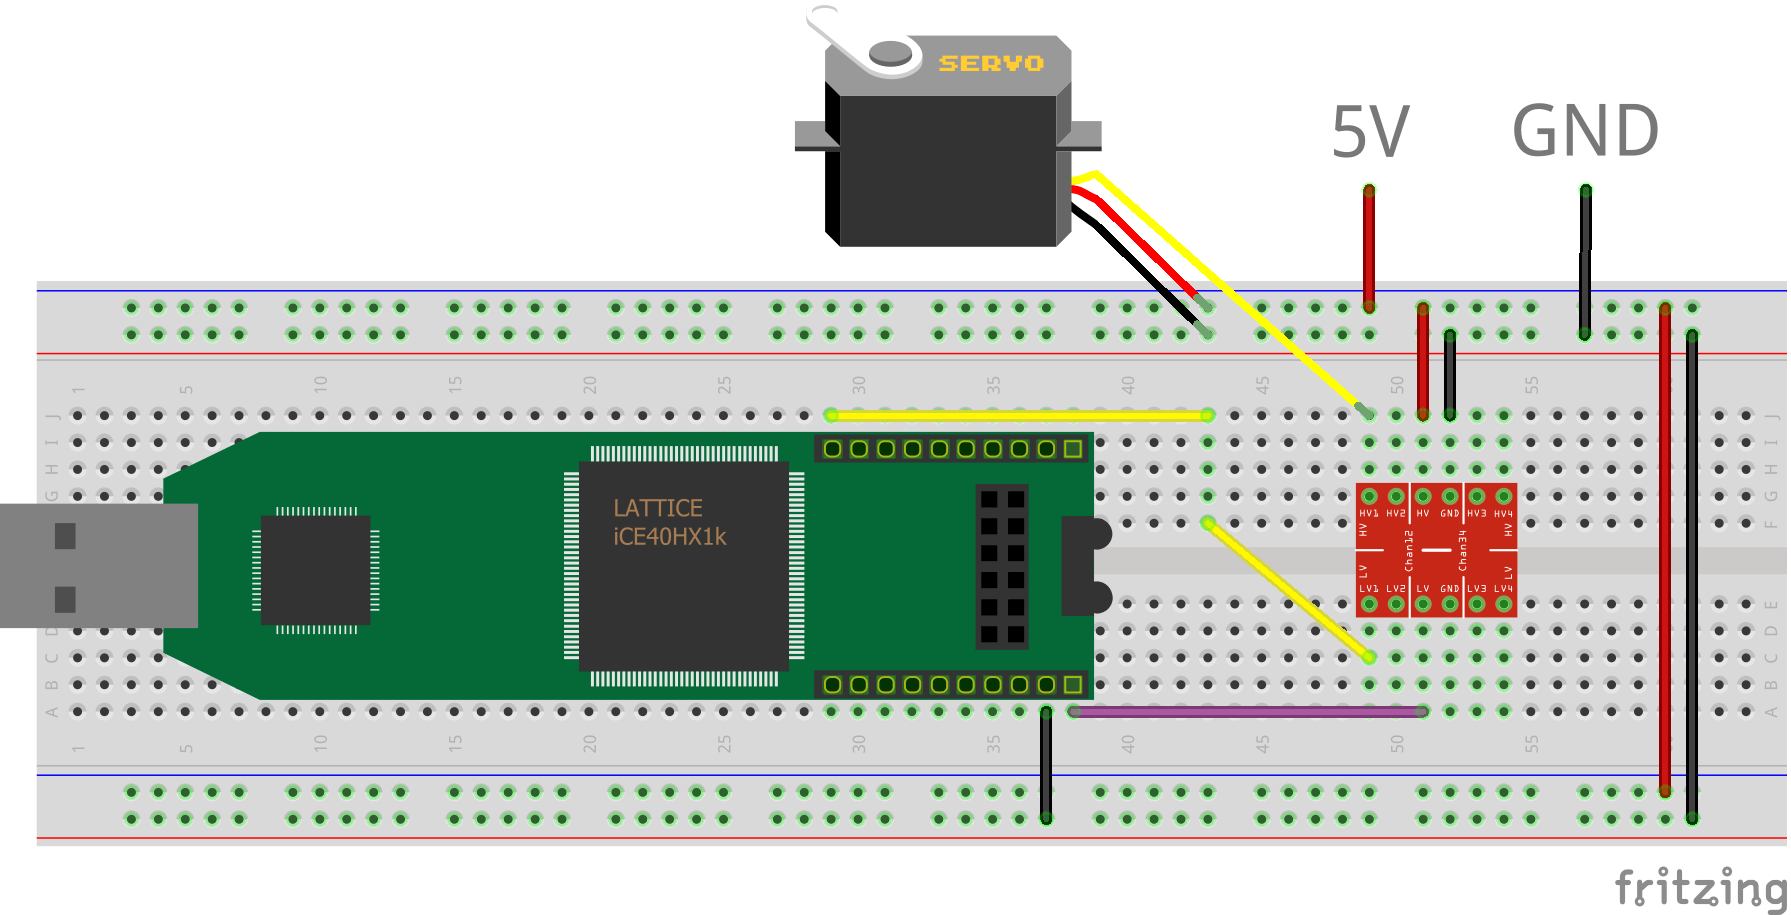 Breadboard layout of Lattice iCEstick connected to servo through a level shifter